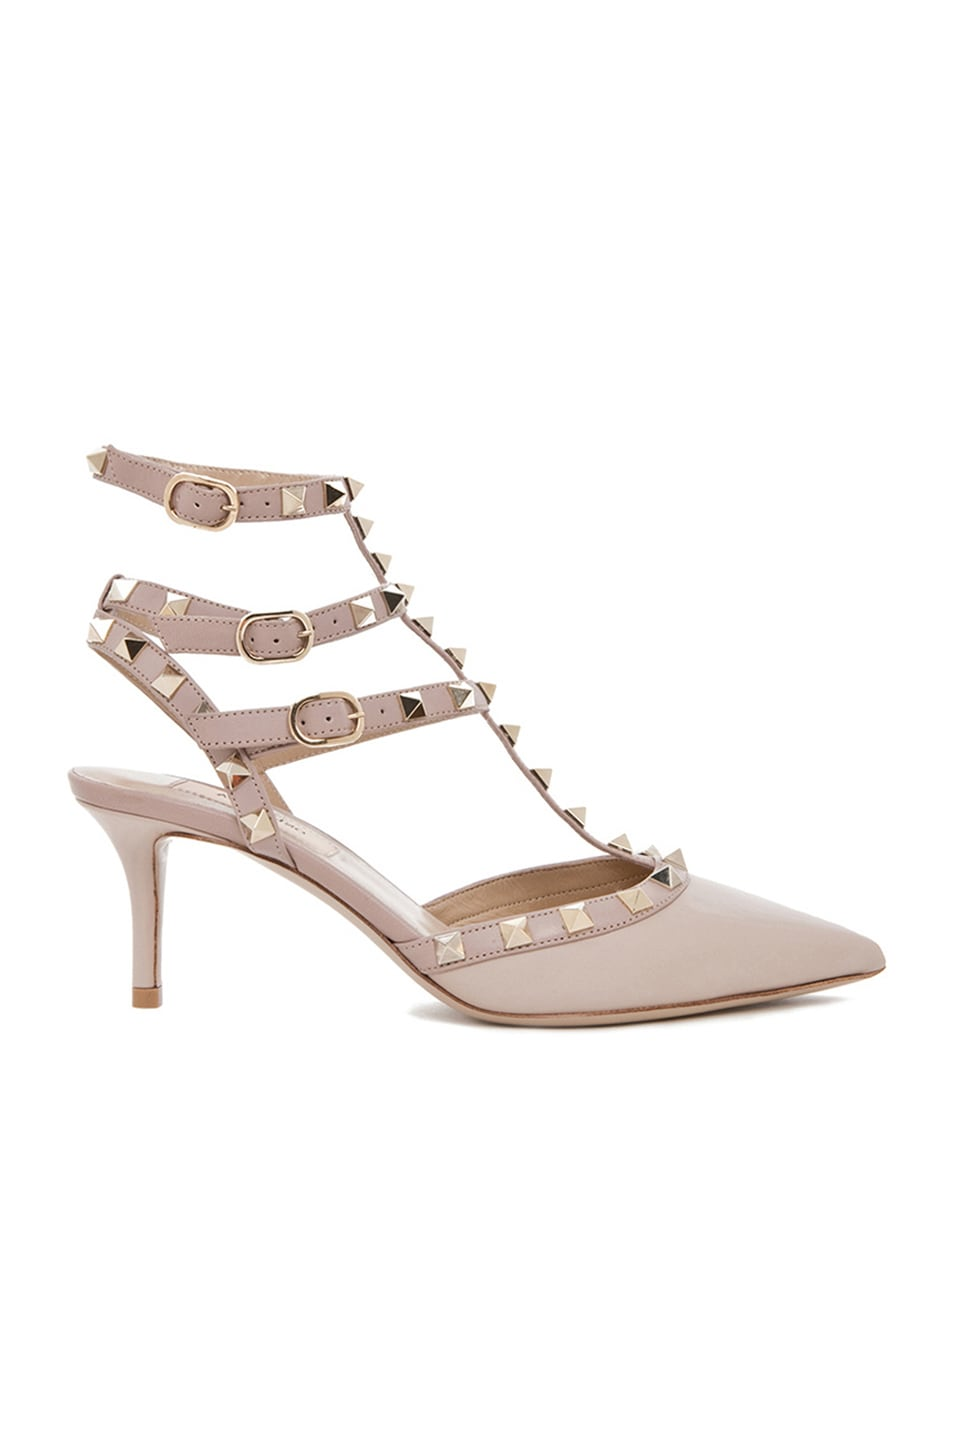 d2c4234d4047 Image 1 of Valentino Rockstud Leather Slingbacks T.65 in Powder